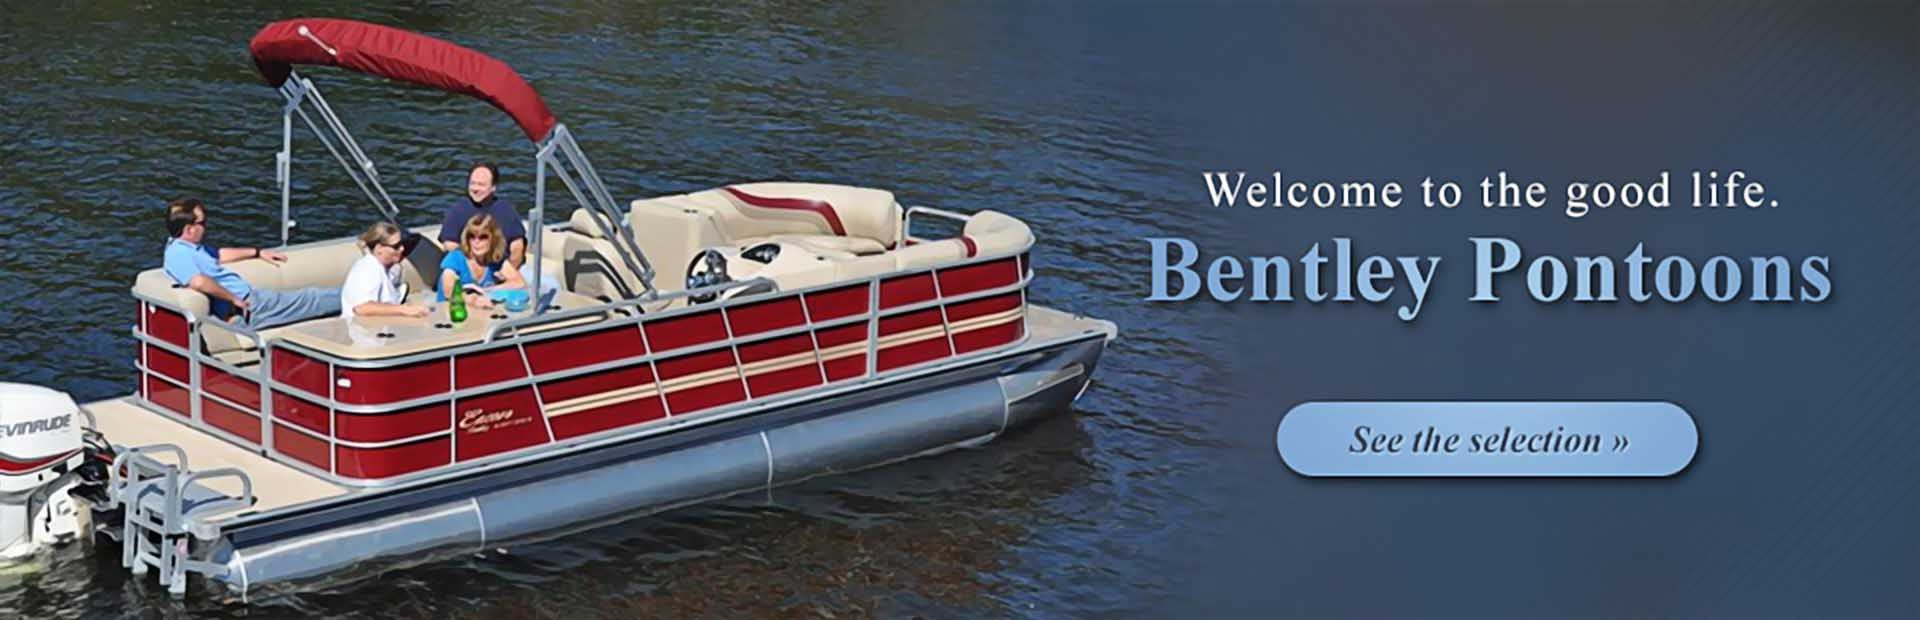 Bentley Pontoons: Click here to see the selection!